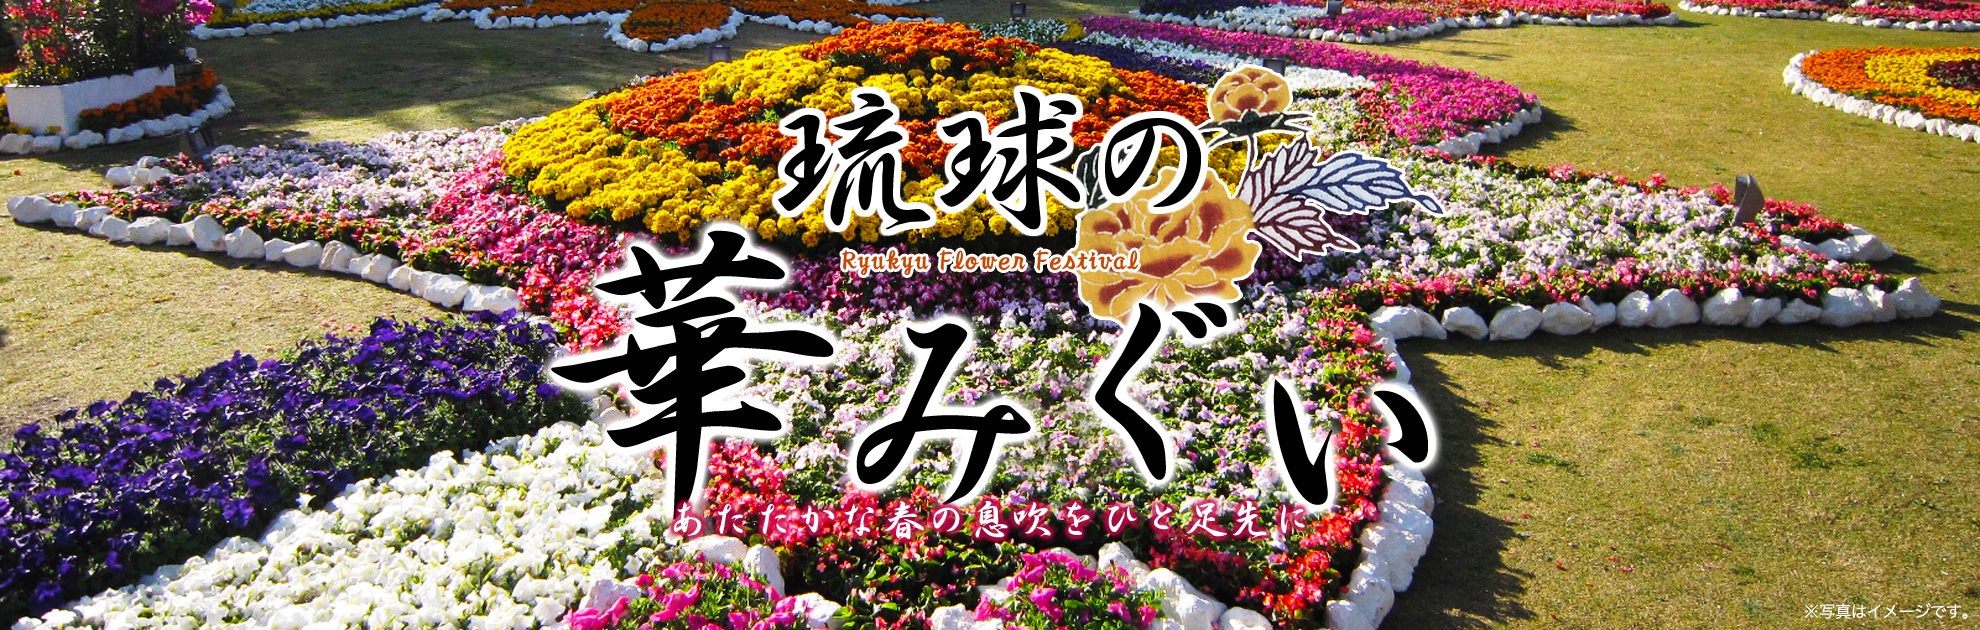 Colorful flower and houseplants are in full glory in the sinter migui garden of Shurijo Castle Park Ryukyu. How about for taking a ceremonial photograph?